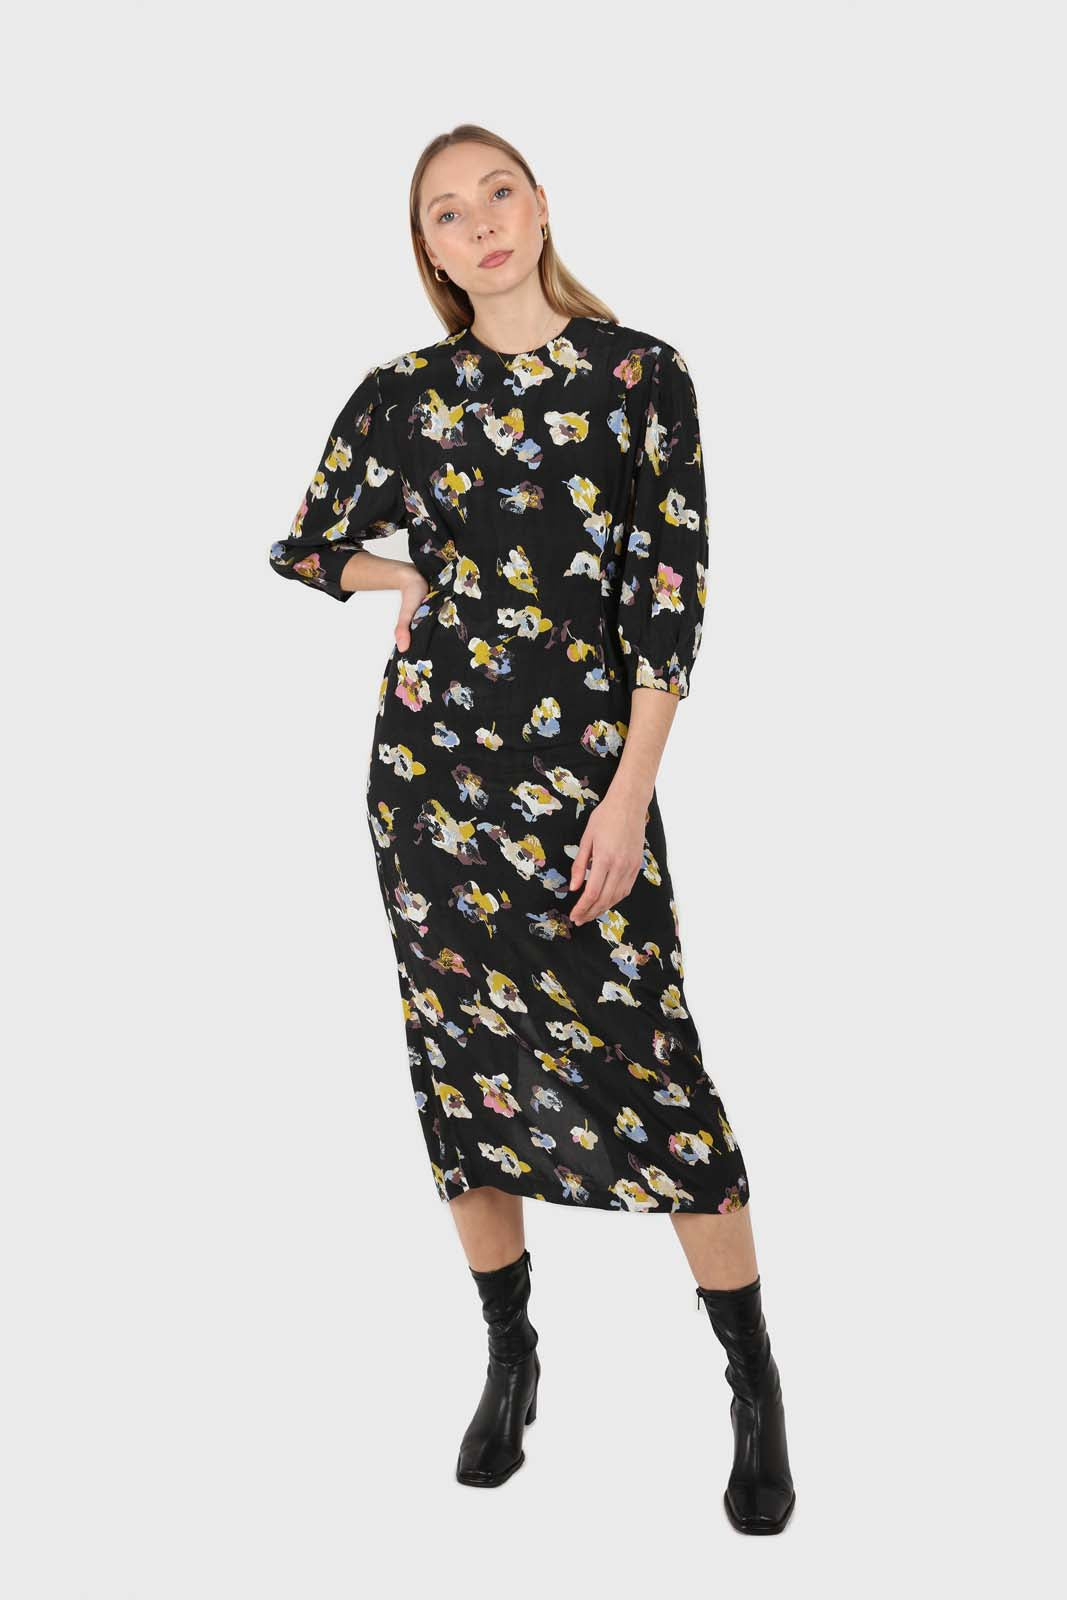 Black floral bias cut long sleeved maxi dress1